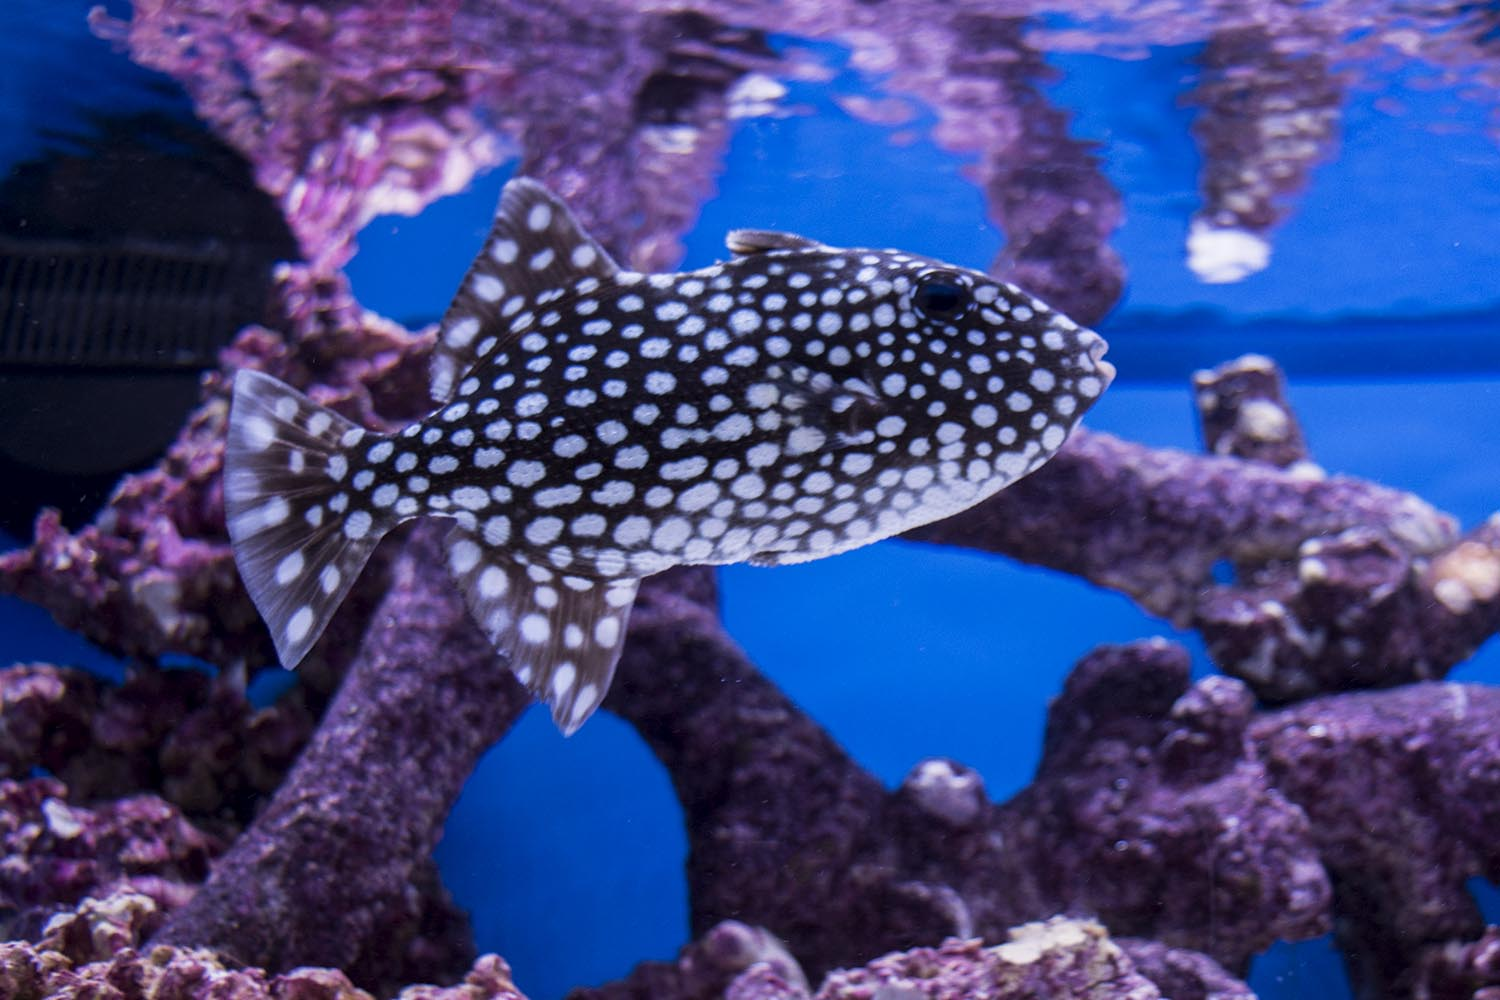 Canthidermis maculata, the Spotted Oceanic Triggerfish